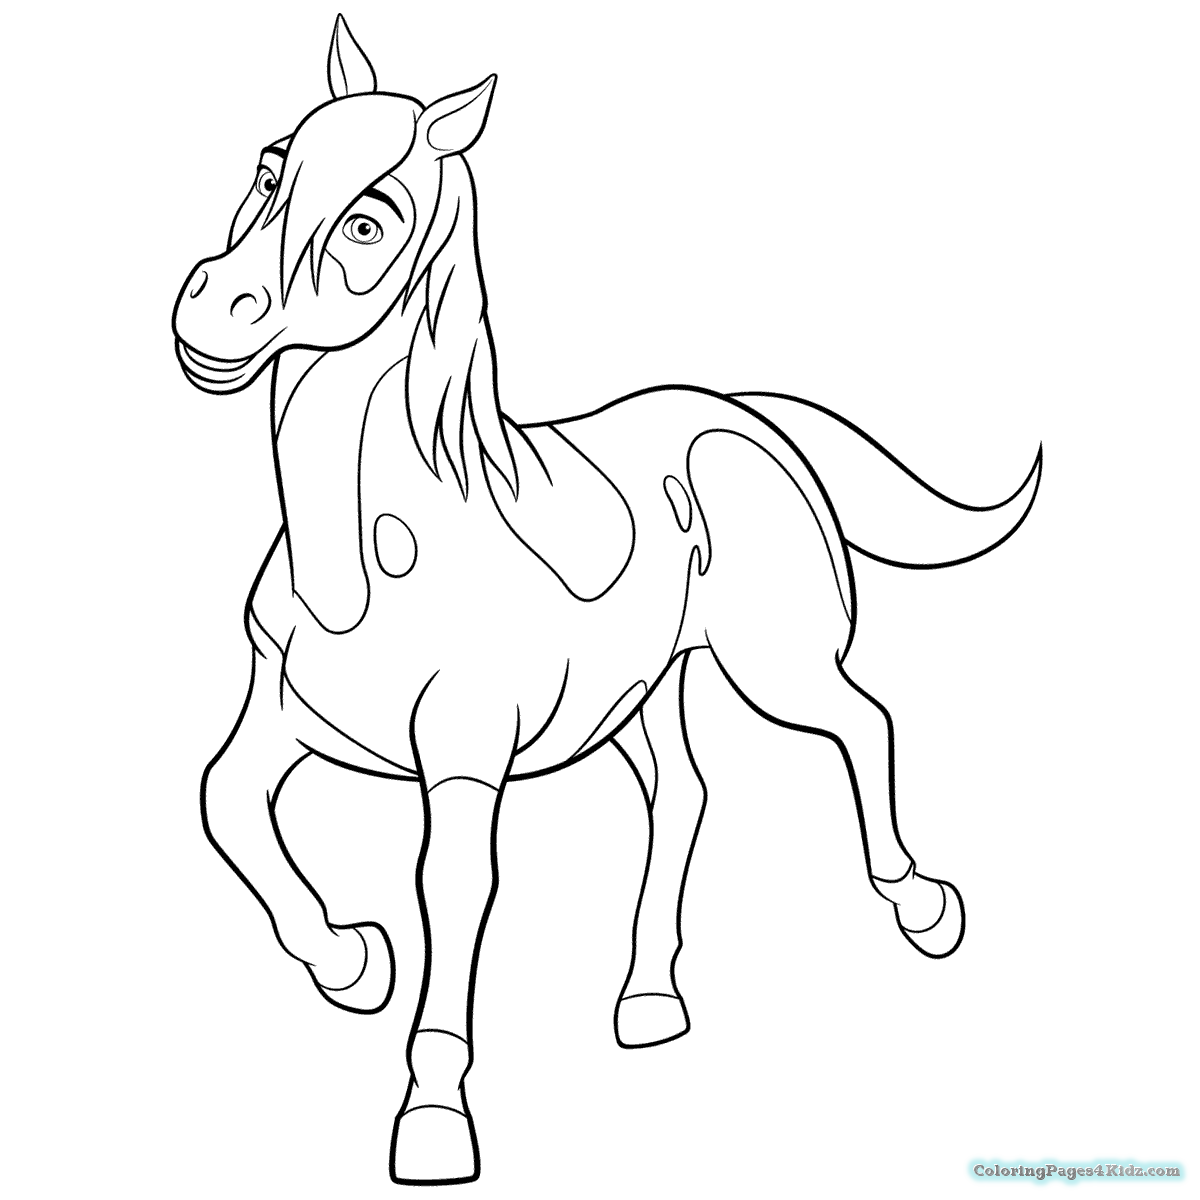 coloring pages free spirit spirit riding free spirit and lucky coloring page books spirit coloring free pages